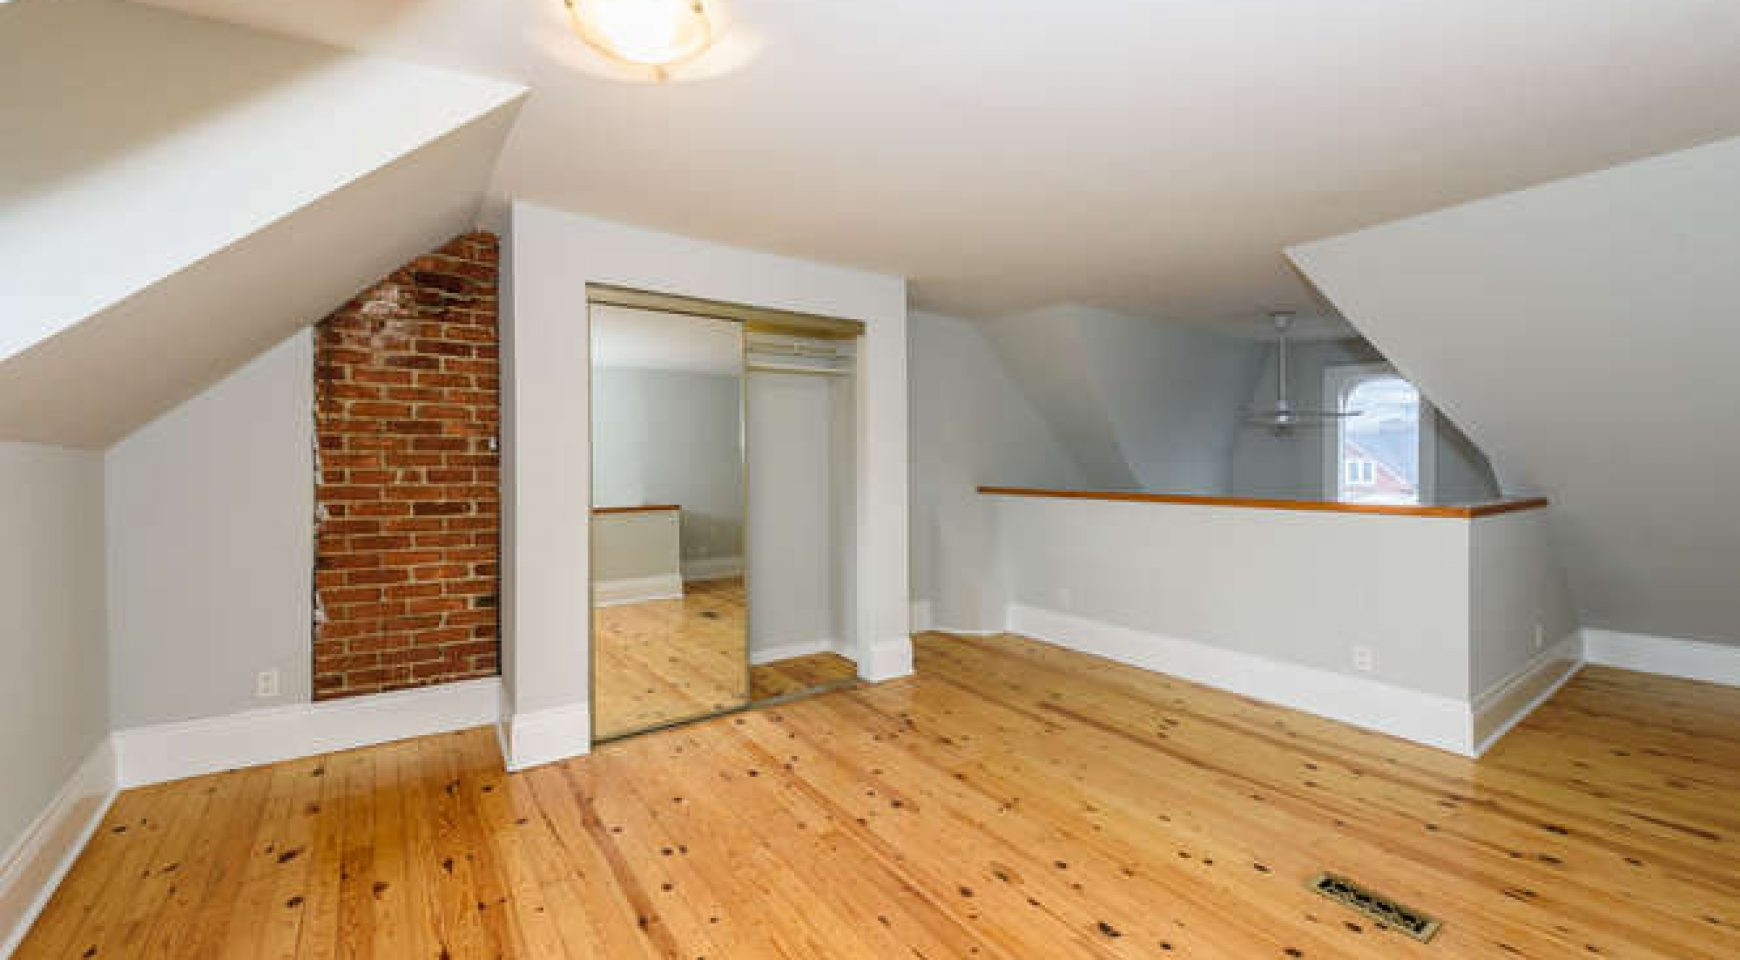 shaw hardwood flooring canada of 220 shaw street trinity bellwoods sold west queen west realtor throughout sold